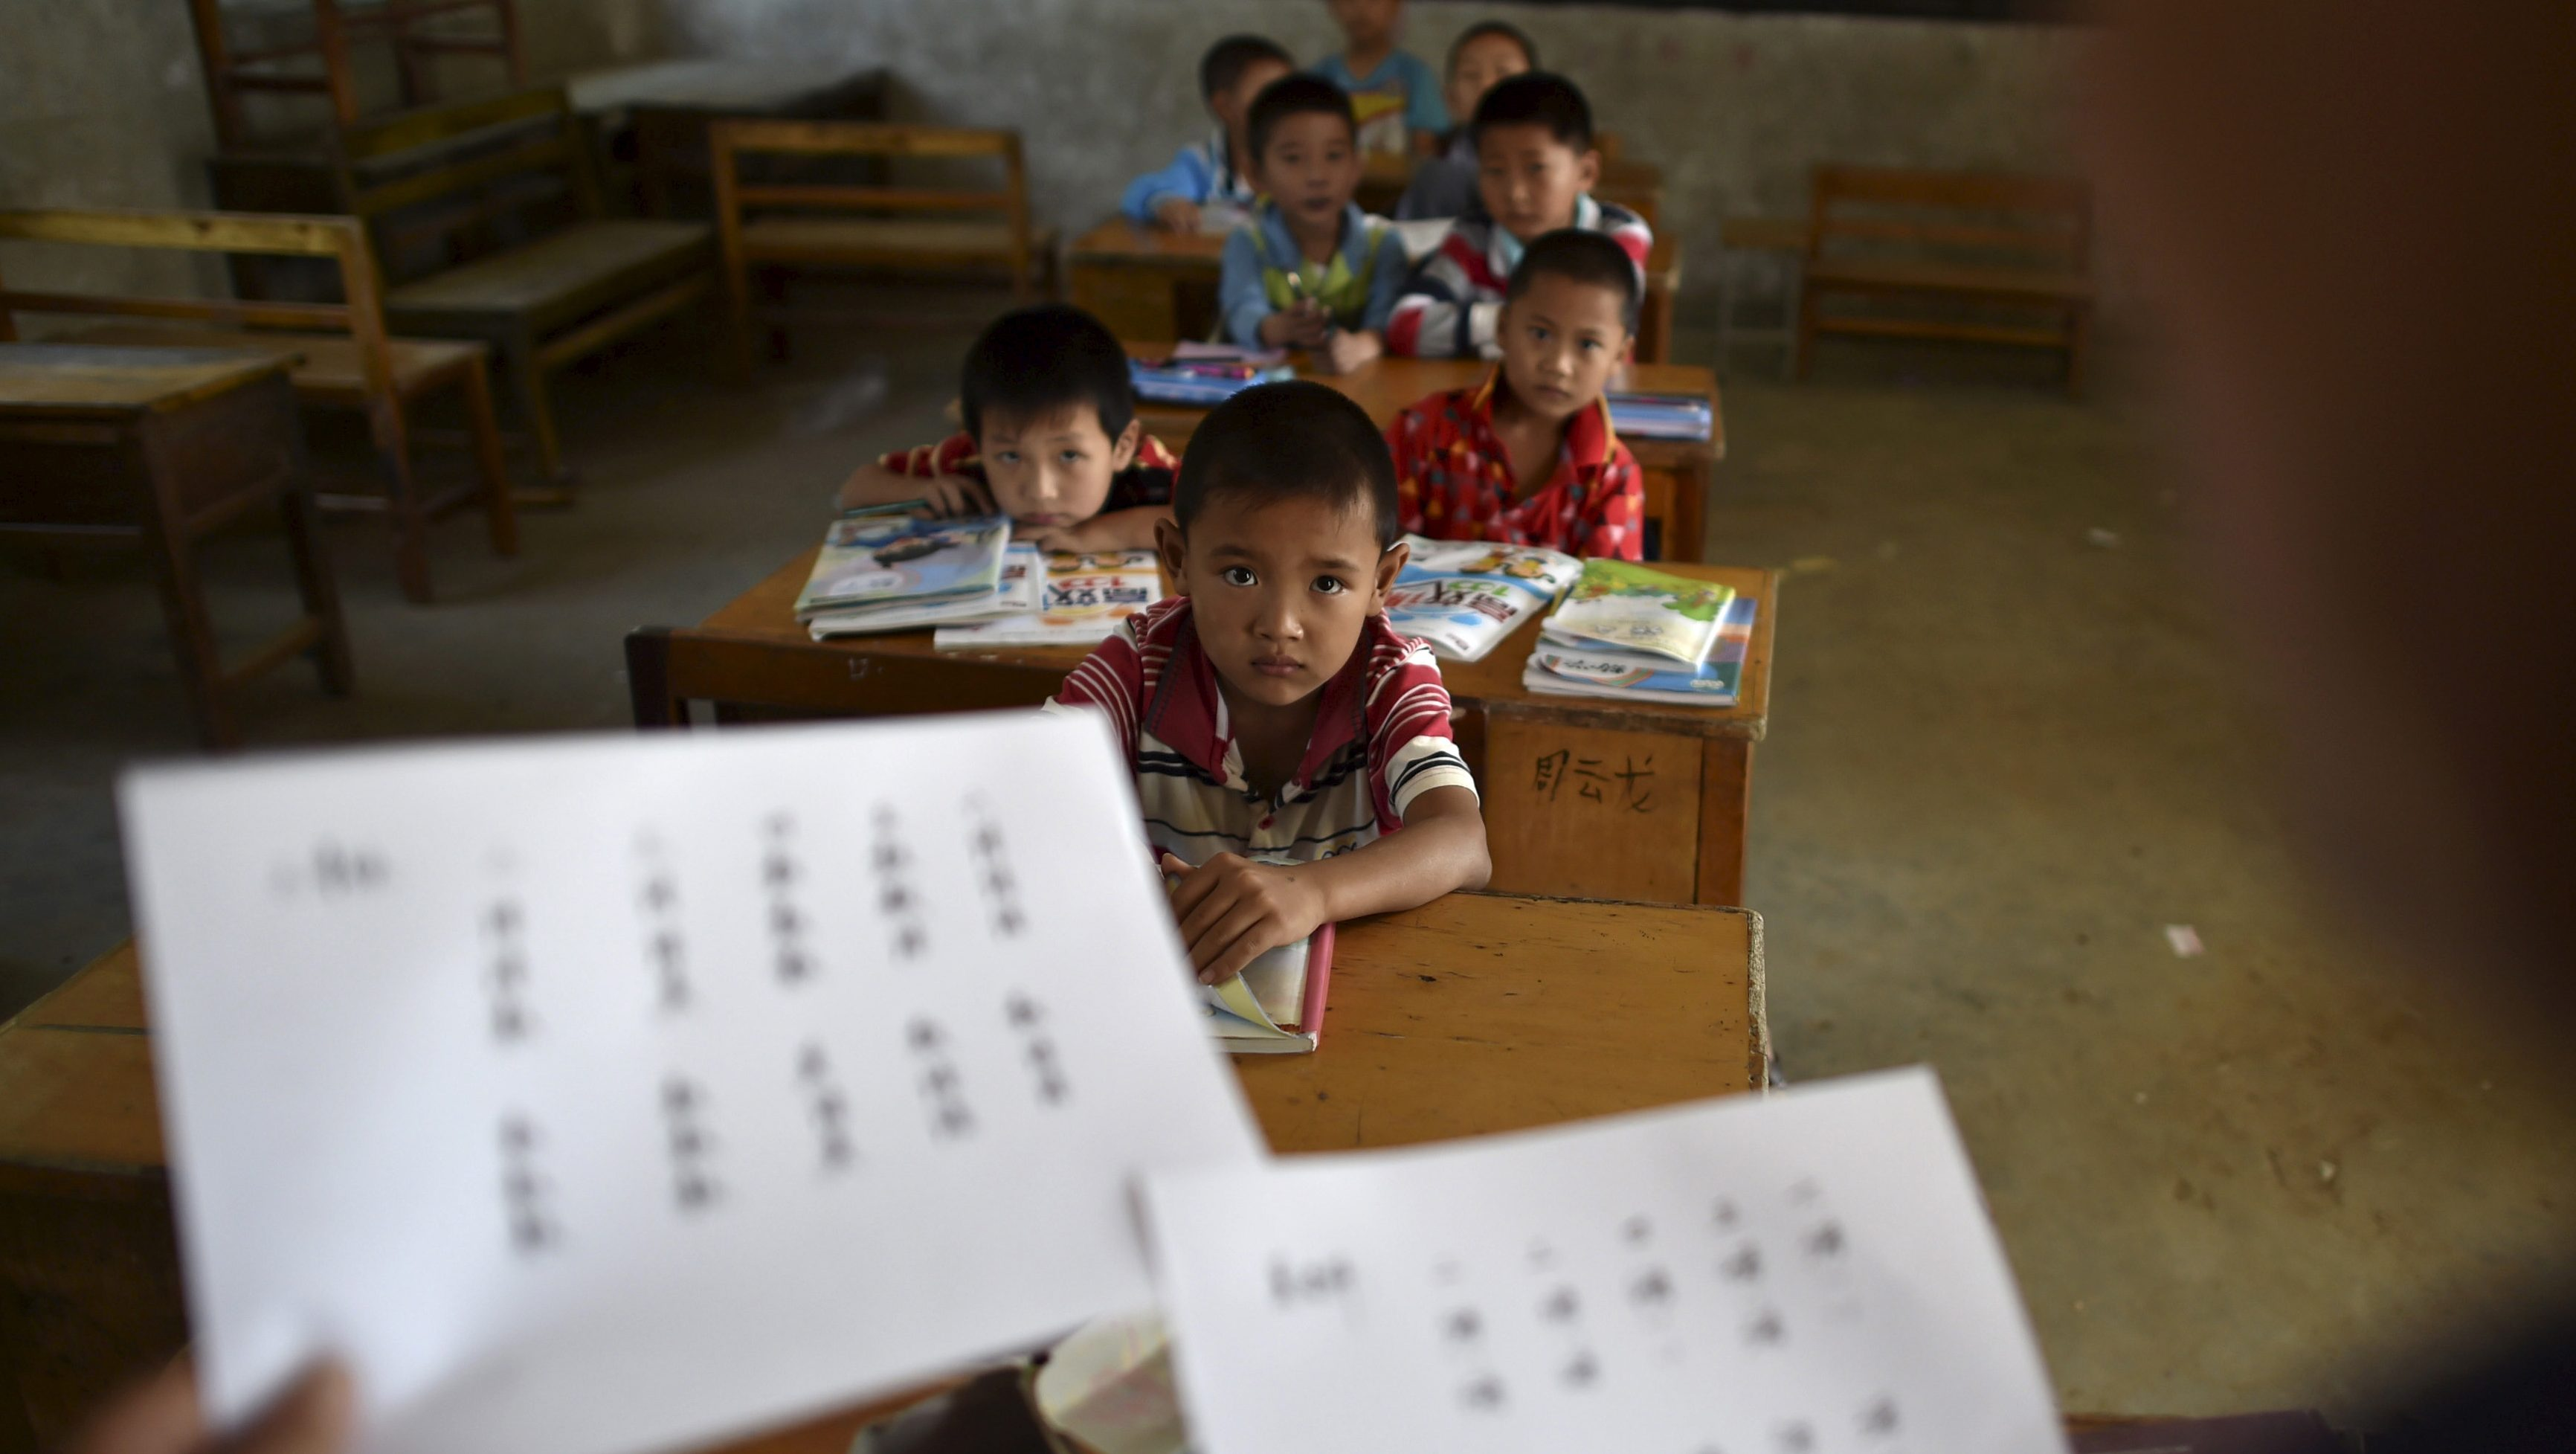 "Students look at their teacher holding papers of the new curriculum at a classroom of Dalu primary school in Gucheng township of Hefei, Anhui province, China, September 8, 2015. The school, opened in 2006 and has never acquired a legal license, may face a shutdown order from the government. There are currently over 160 students in the school, mostly ""leftover children"", whose parents left their hometown to earn a living, local media reported. Picture taken September 8, 2015."